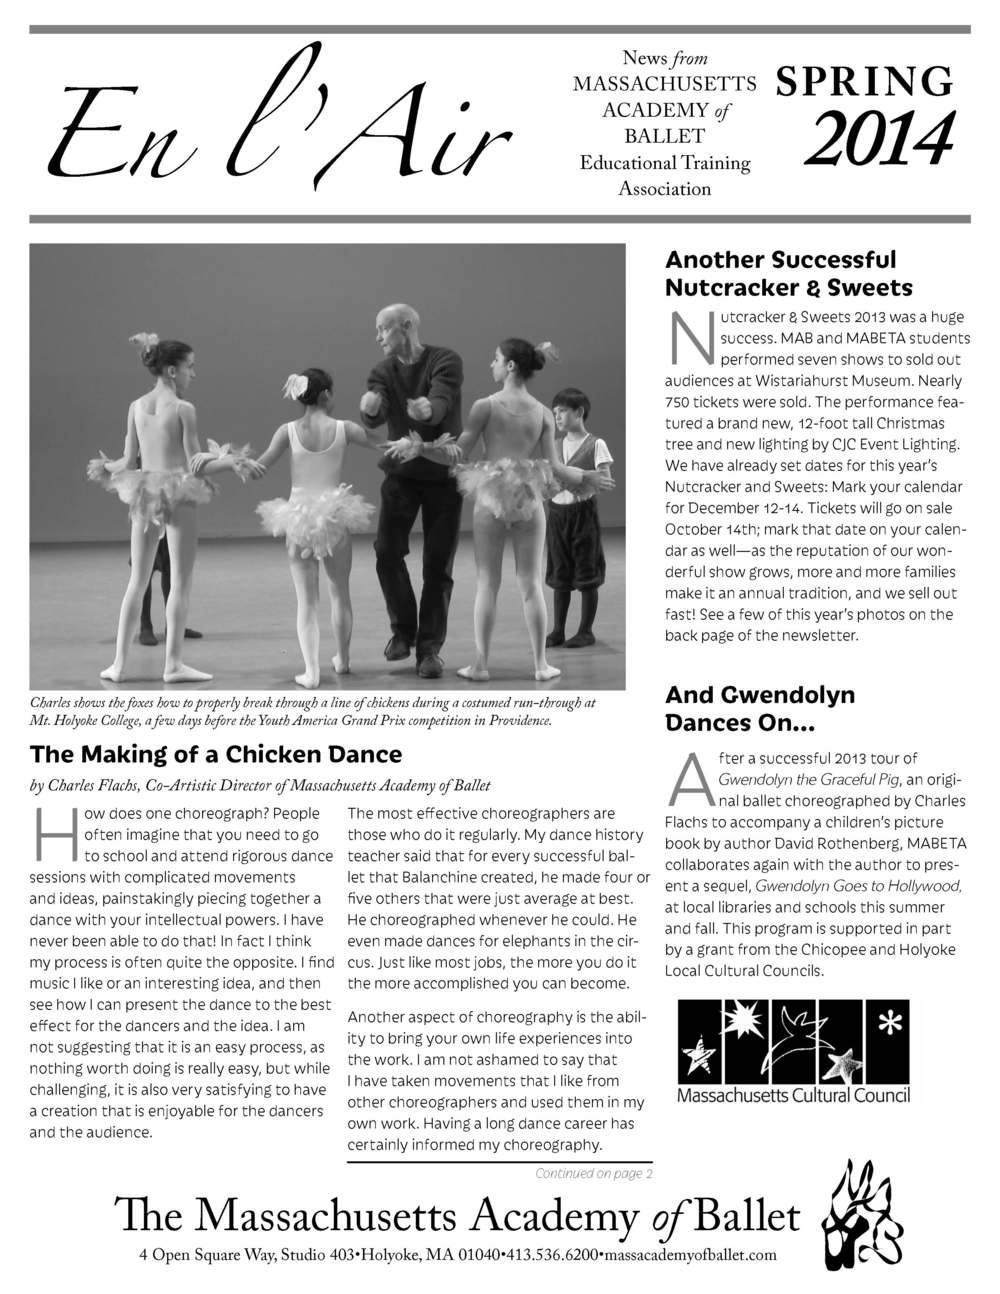 Massachusetts Academy of Ballet Spring 2014